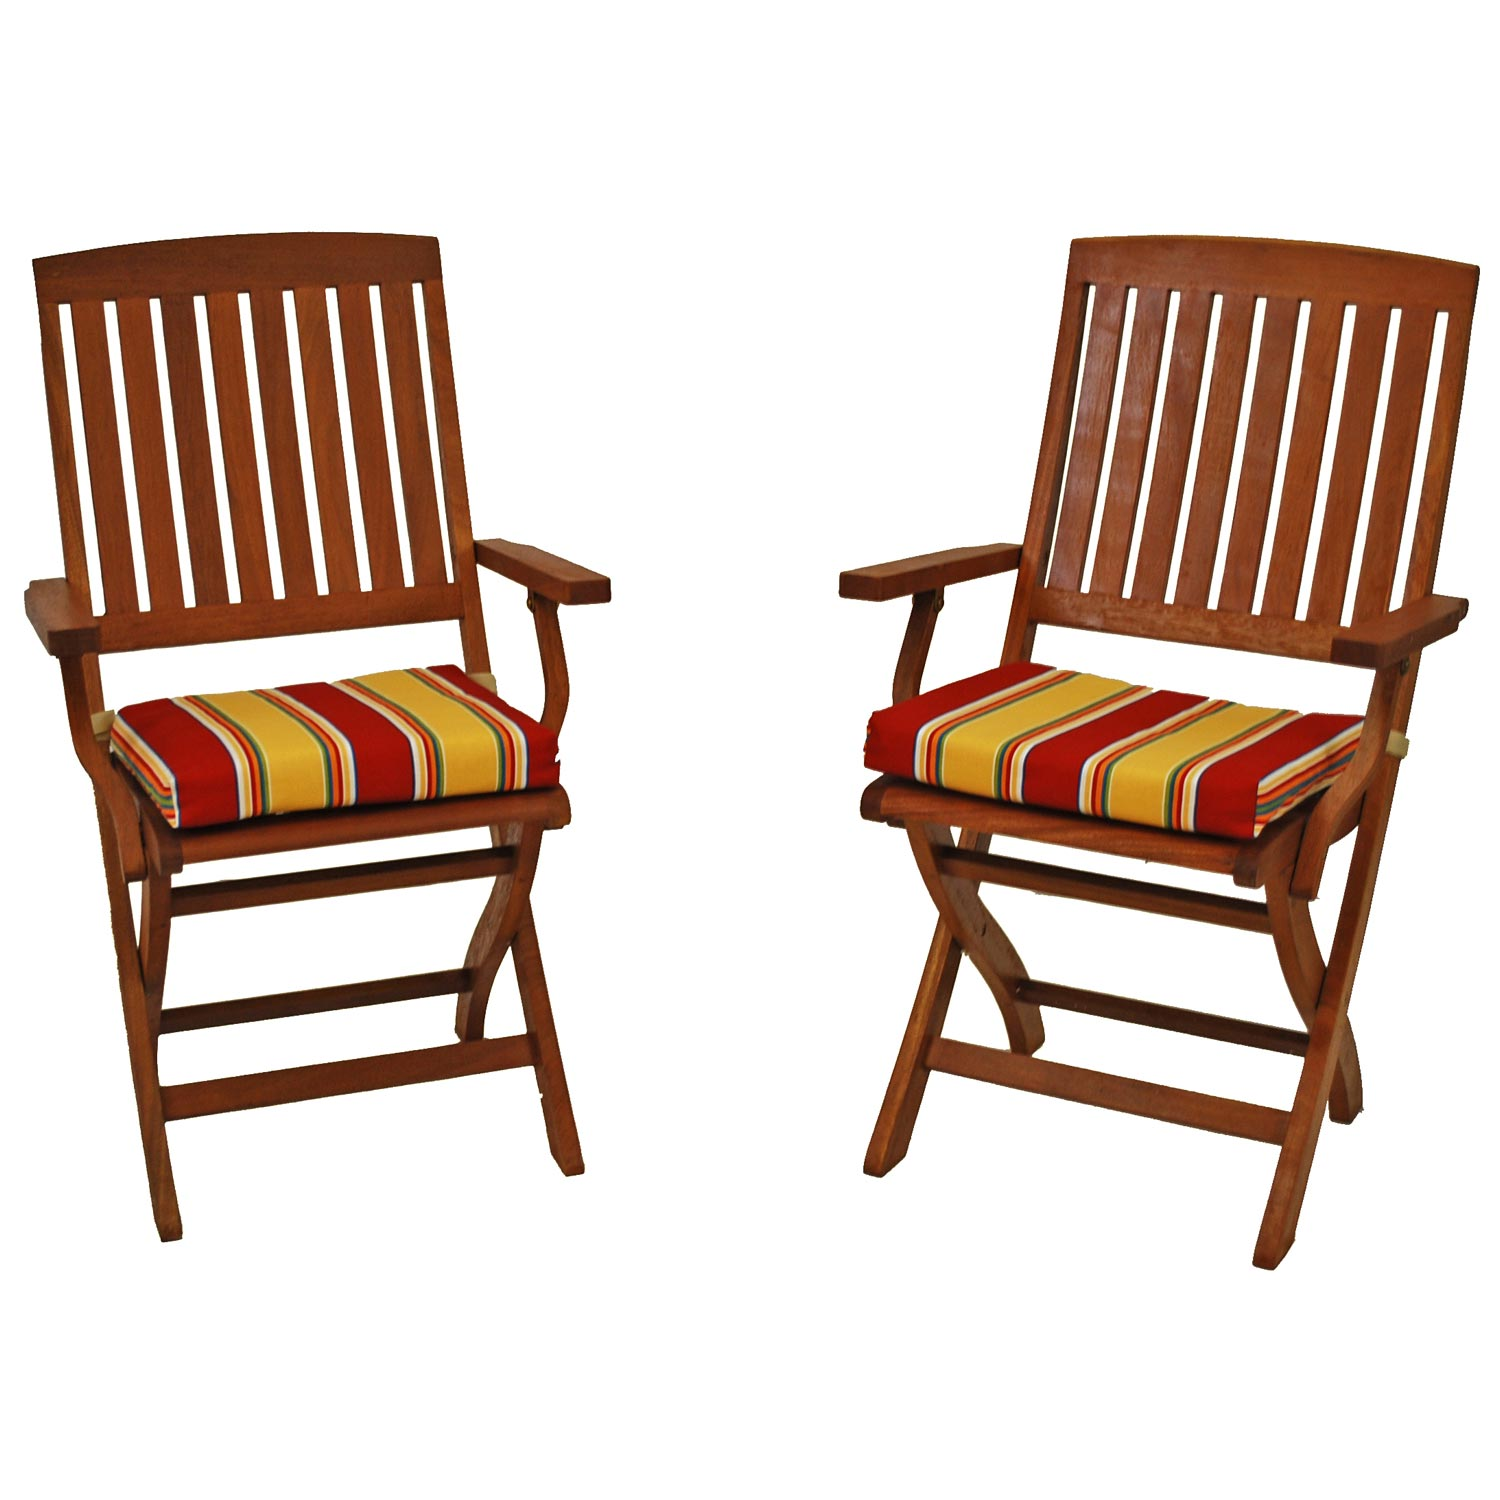 Outdoor Folding Chair Cushion Patterned Fabric Set Of 2